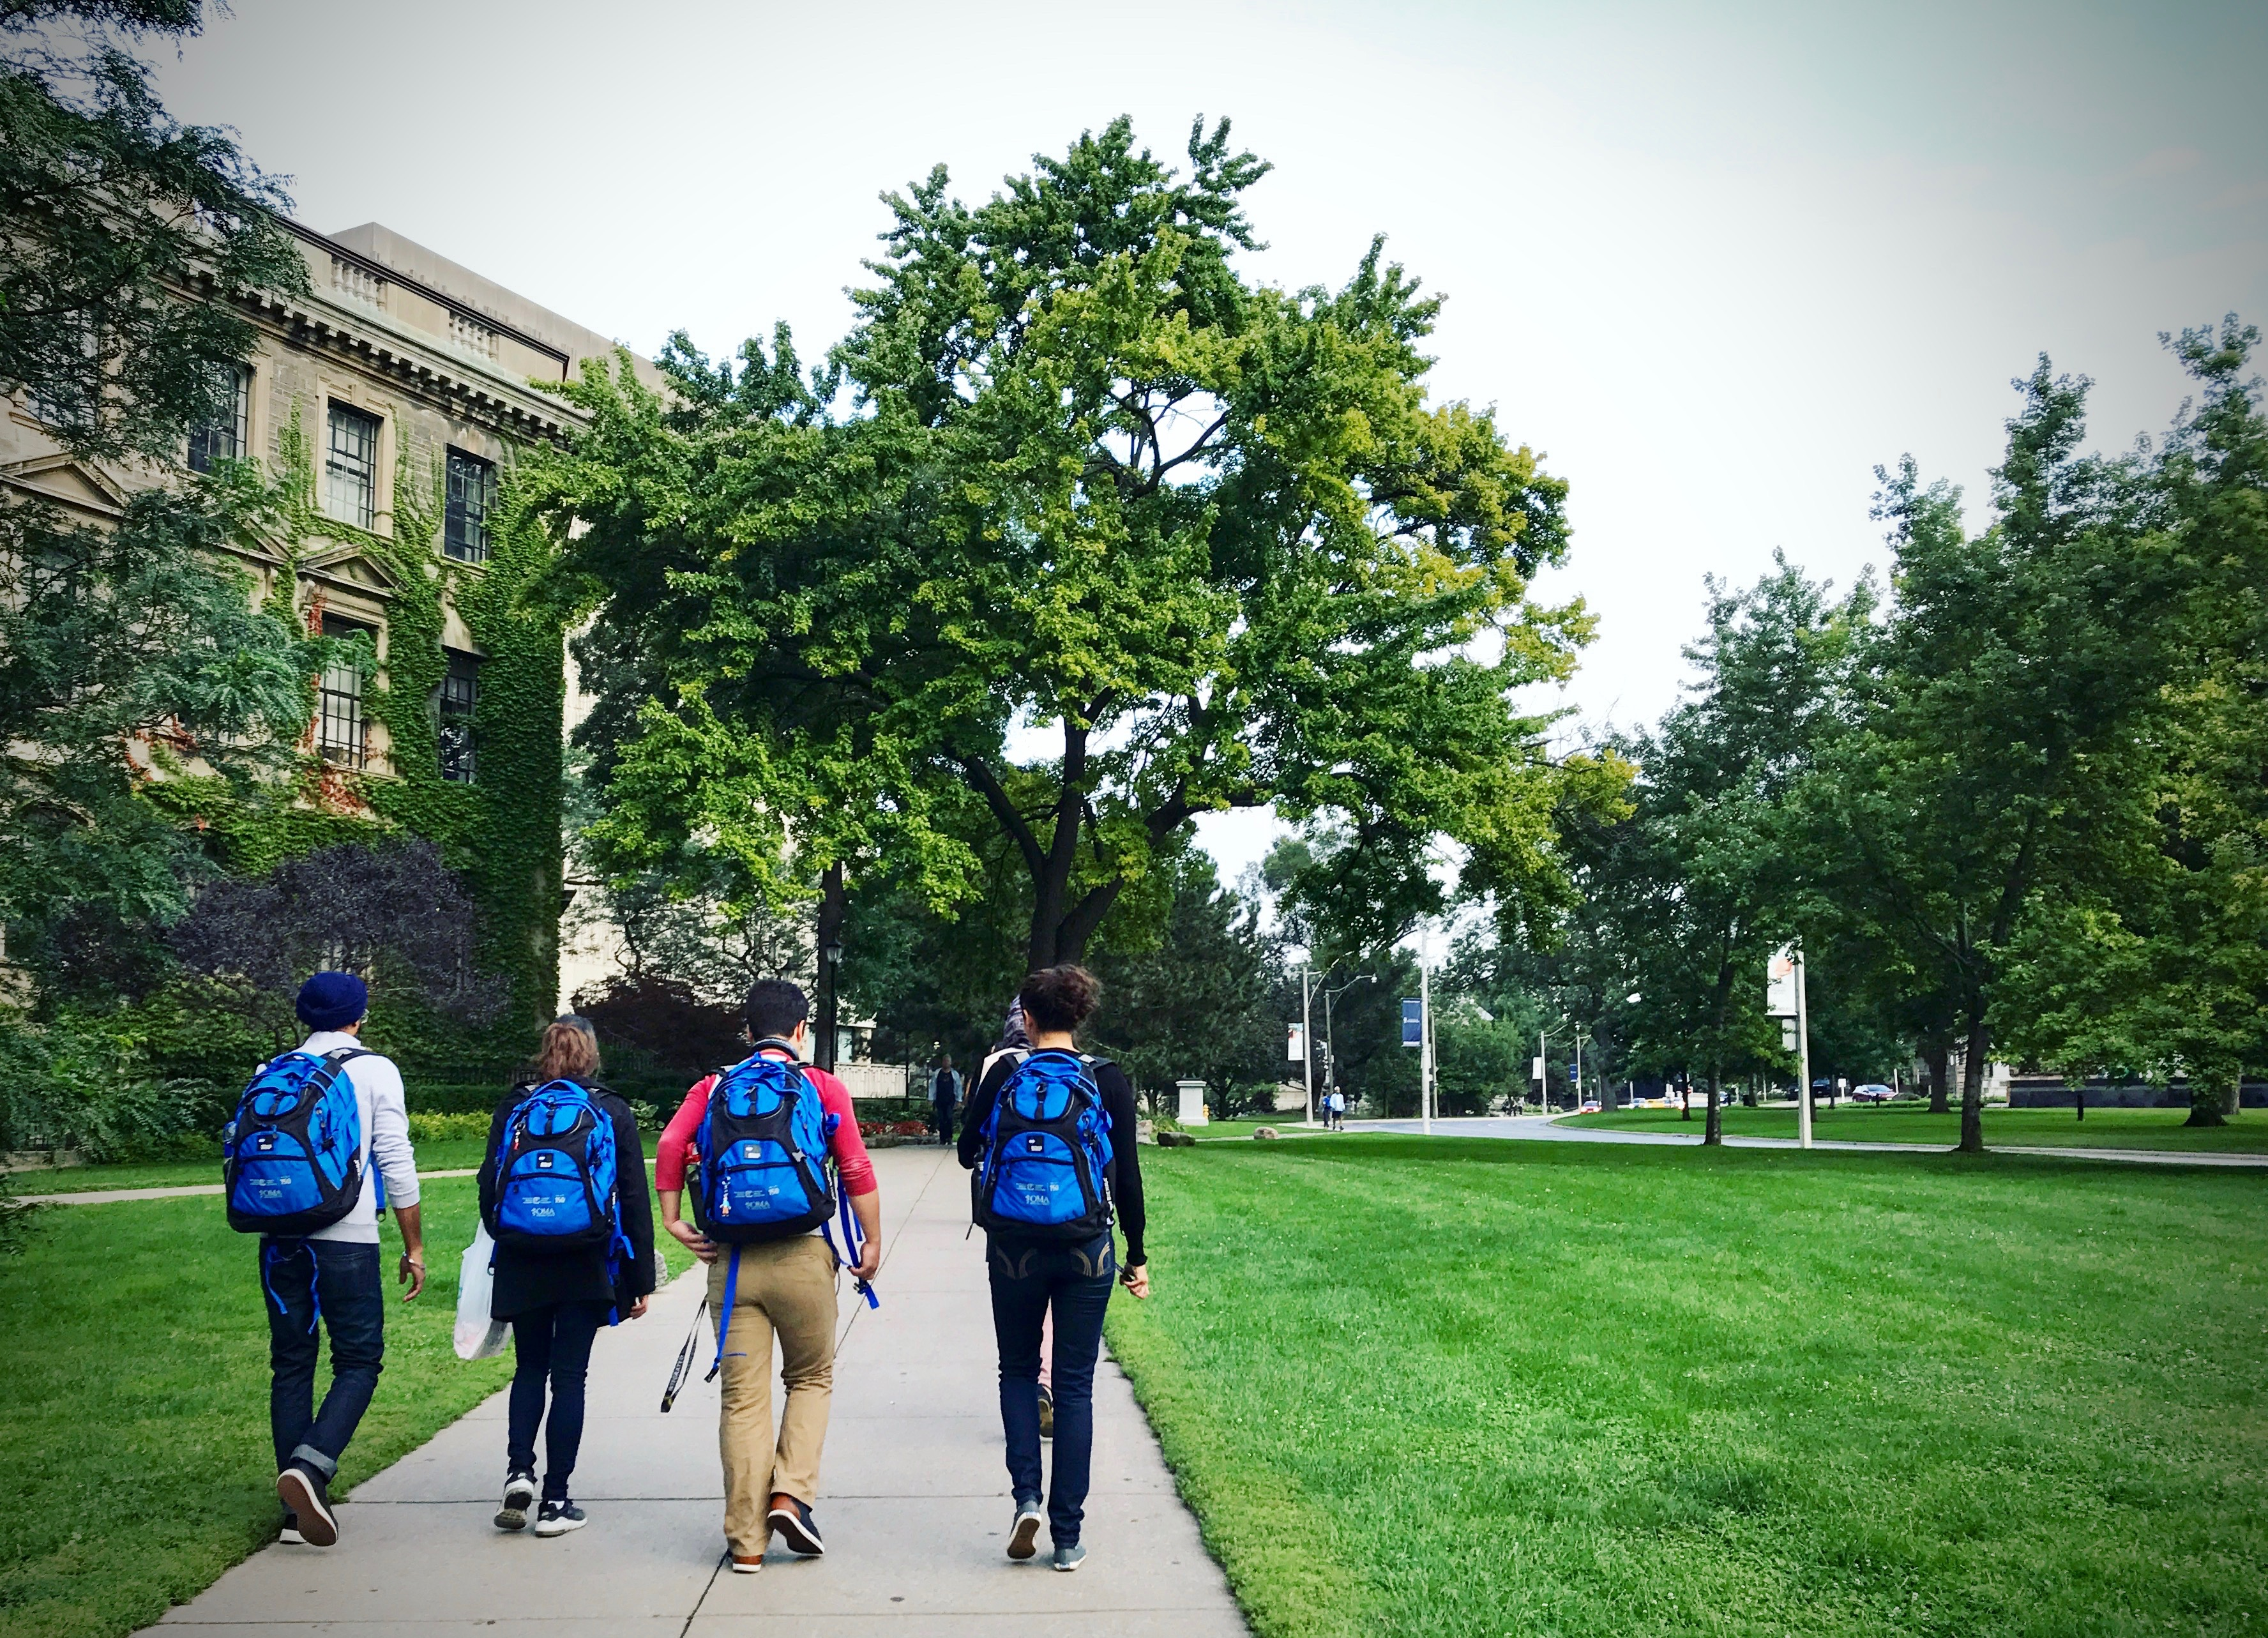 Students walking on University of Toronto's St. George Campus